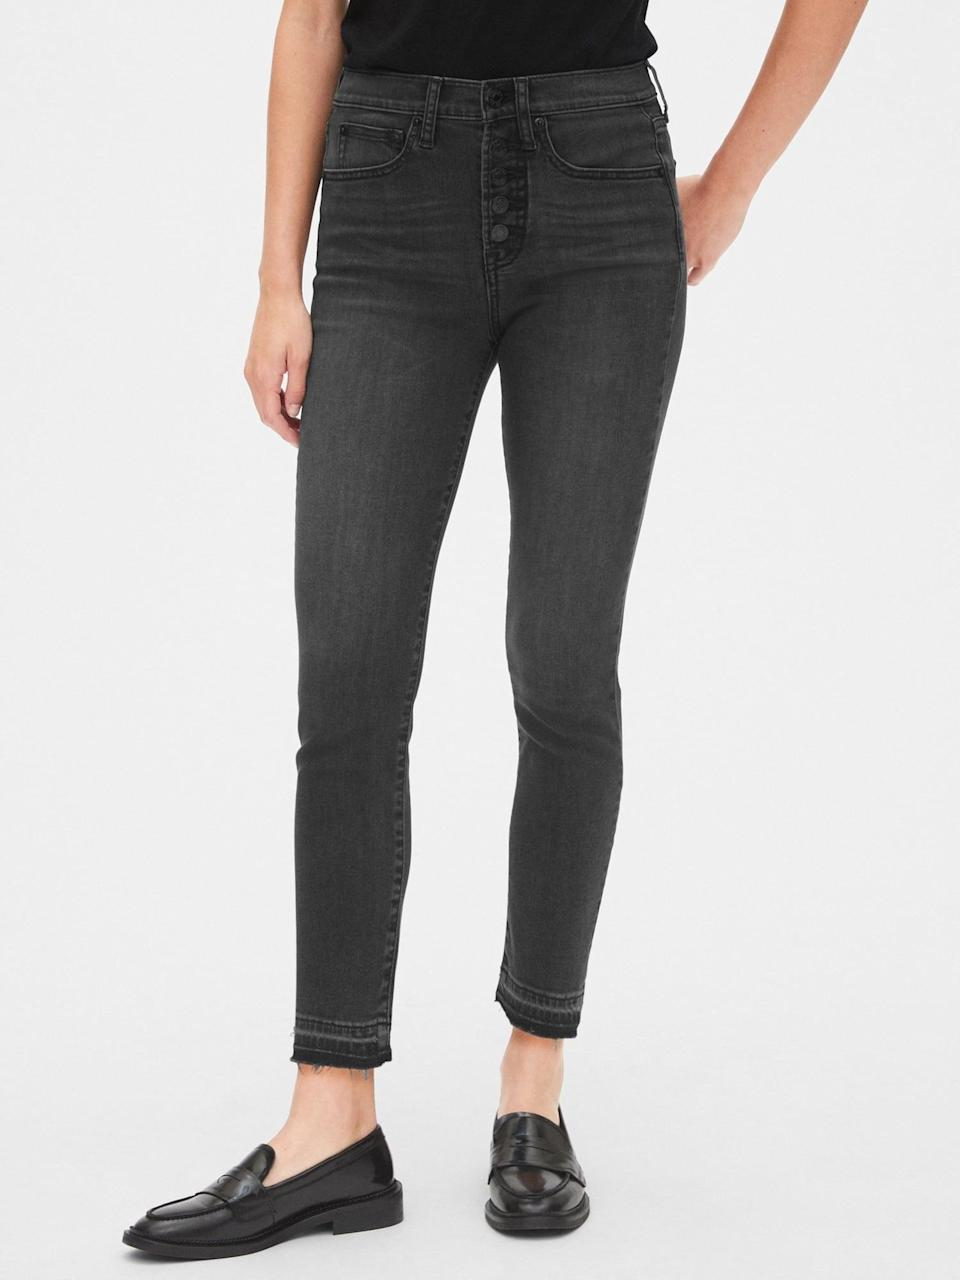 """<p>""""I've turned all my friends on to these <span>Gap High Rise True Skinny Ankle Jeans With Secret Smoothing Pockets</span> ($42, originally $60). They're flattering, affordable, and come in so many cute colors. They've got plenty of stretch, and I have willingly worn them while traveling."""" - IY</p>"""